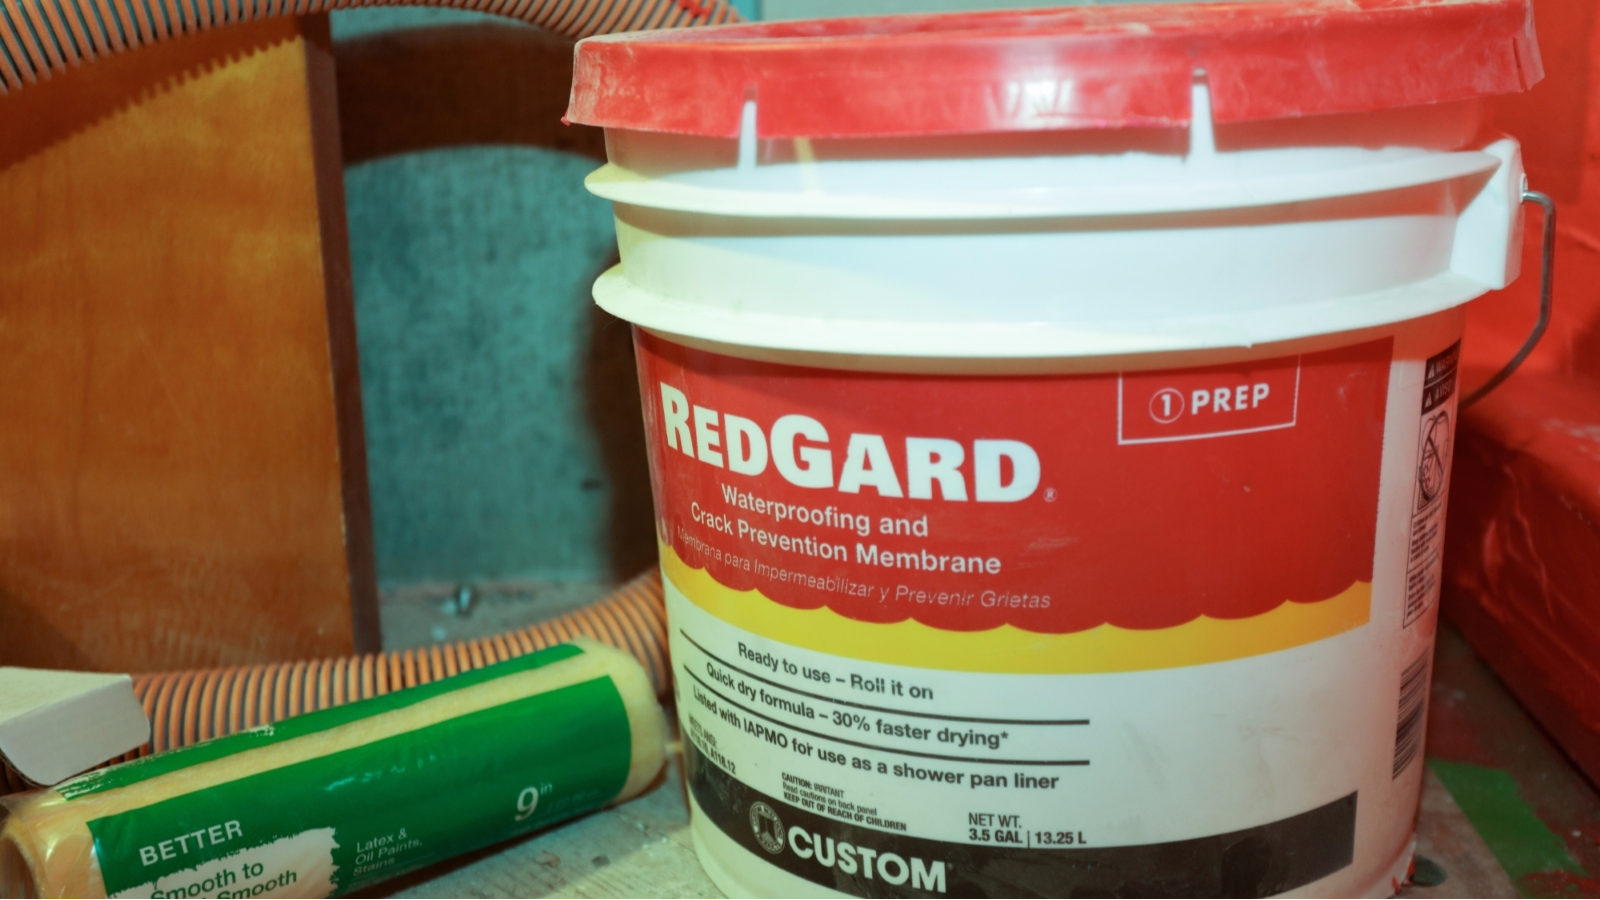 How to Waterproof a Shower with Redgard | Shower pan liner ...